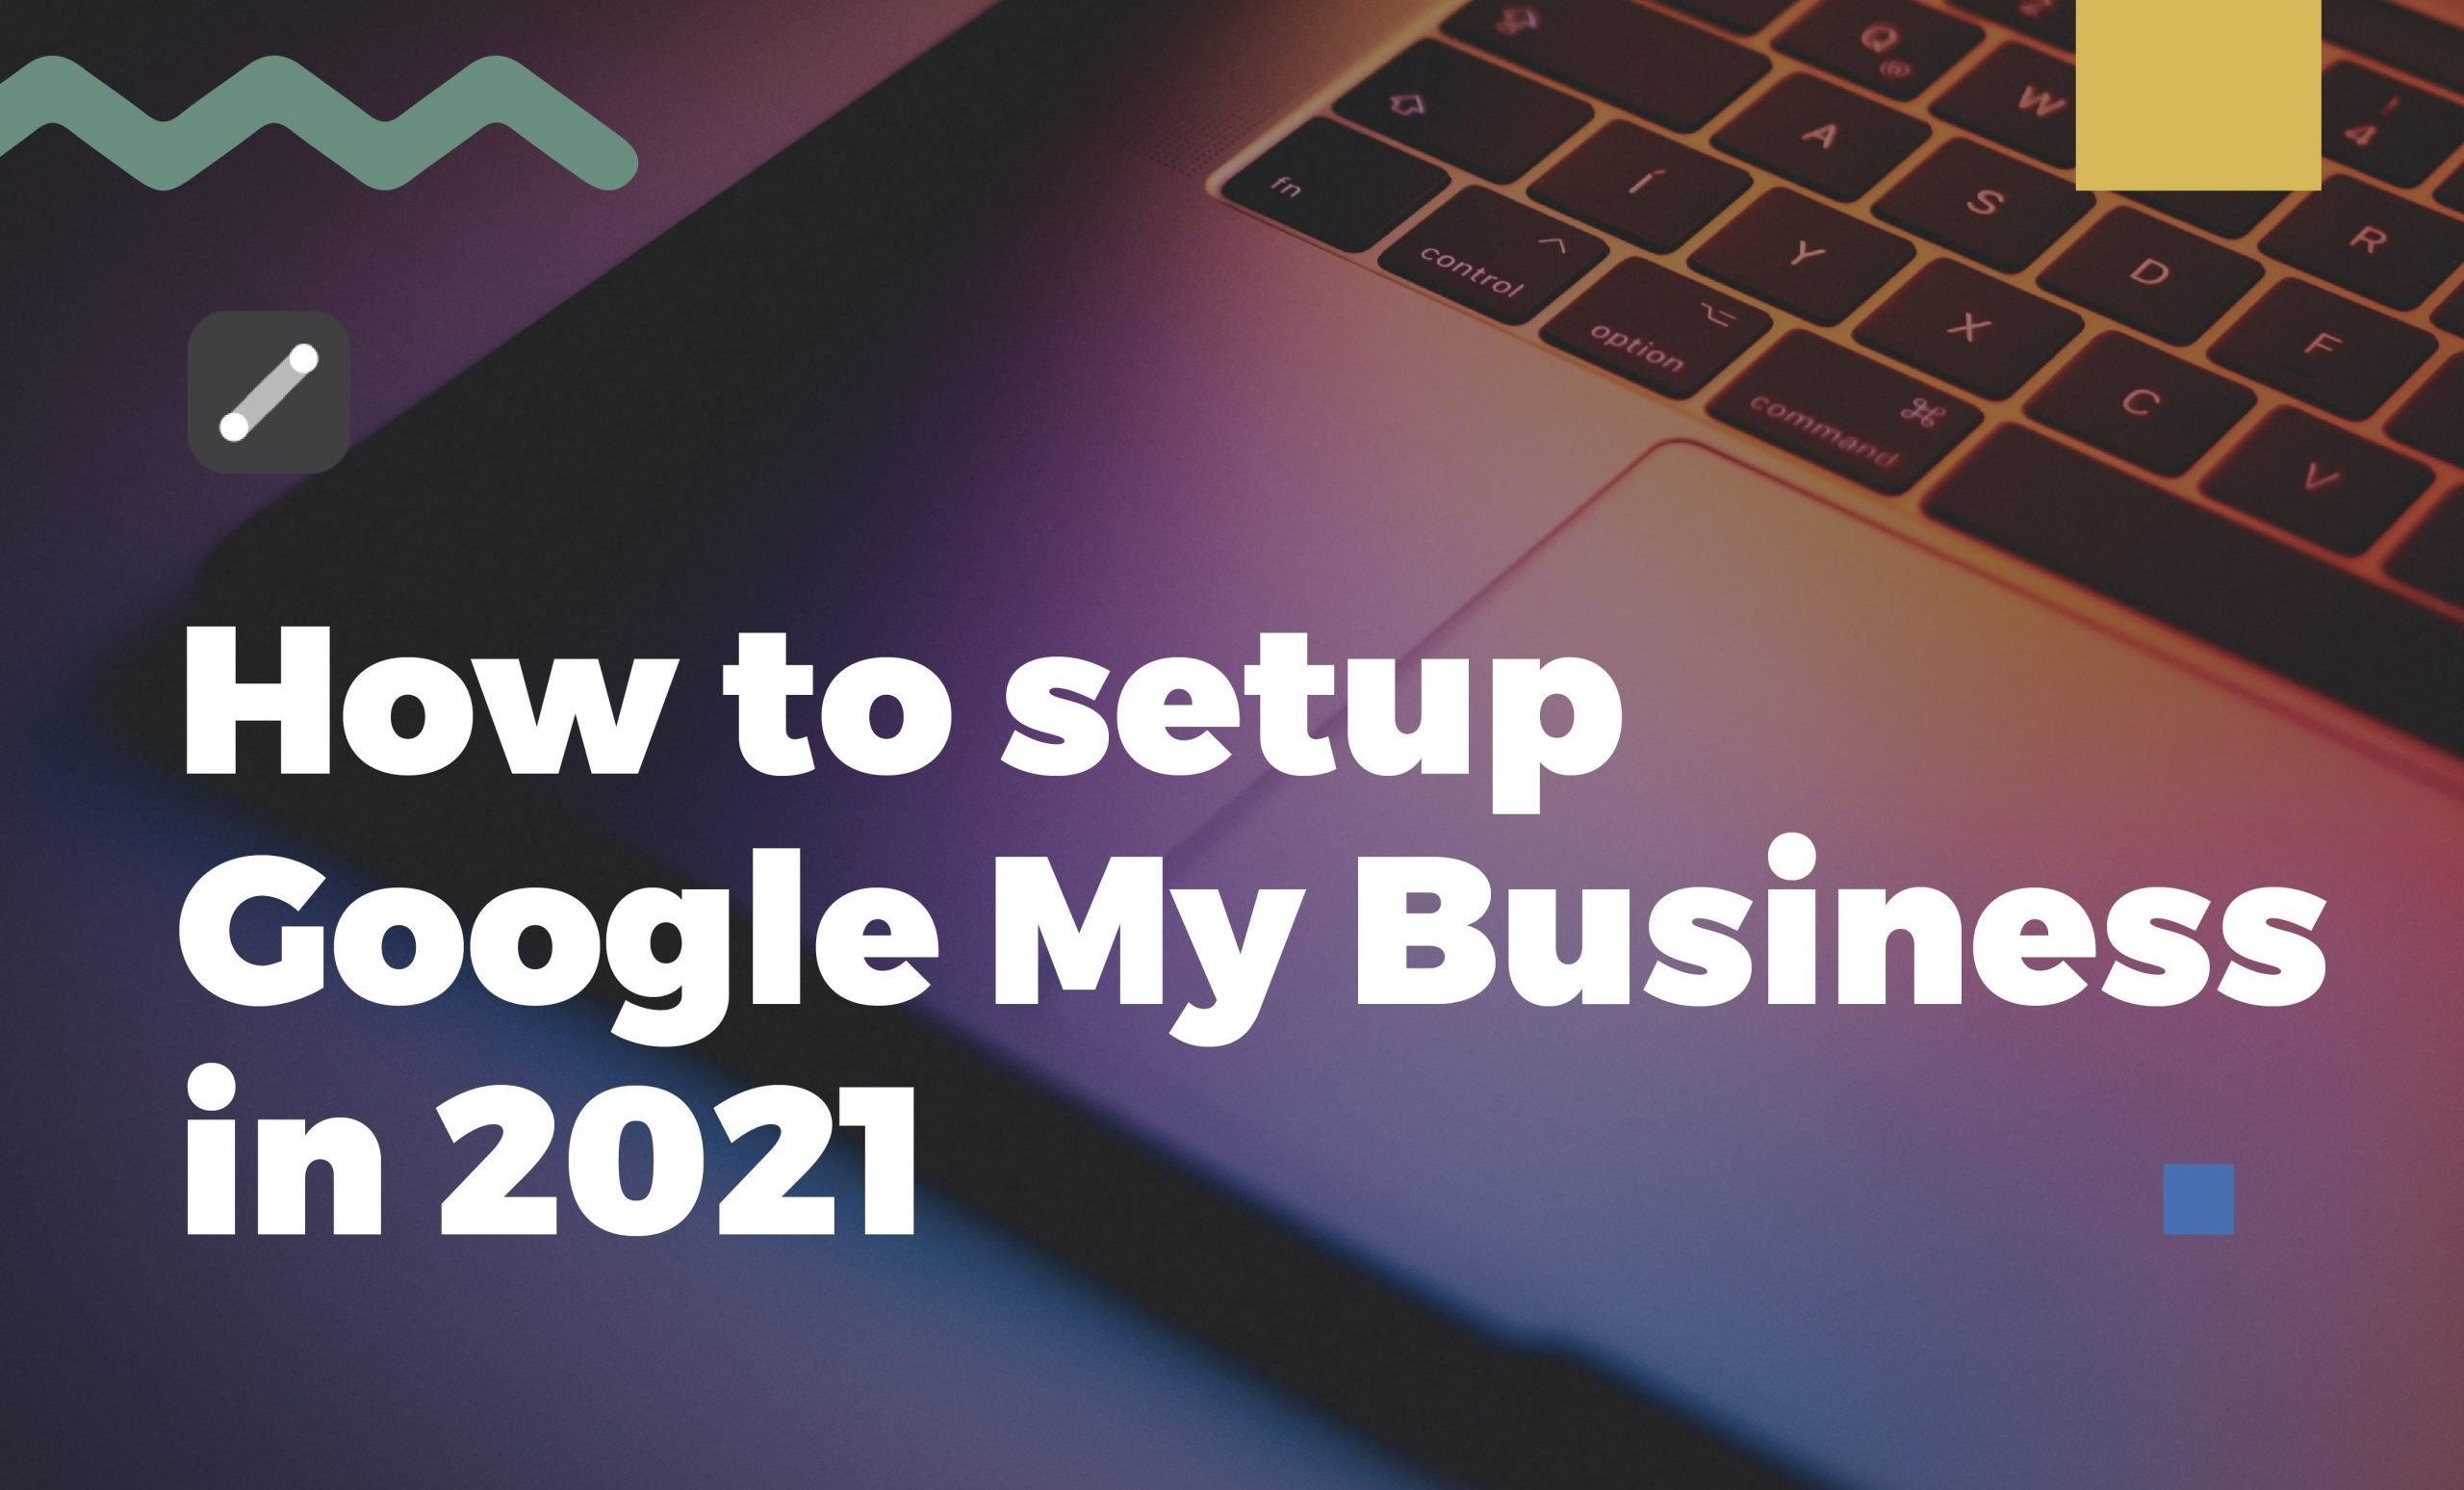 Laptop & the article's title: How to set up Google My Business in 2021